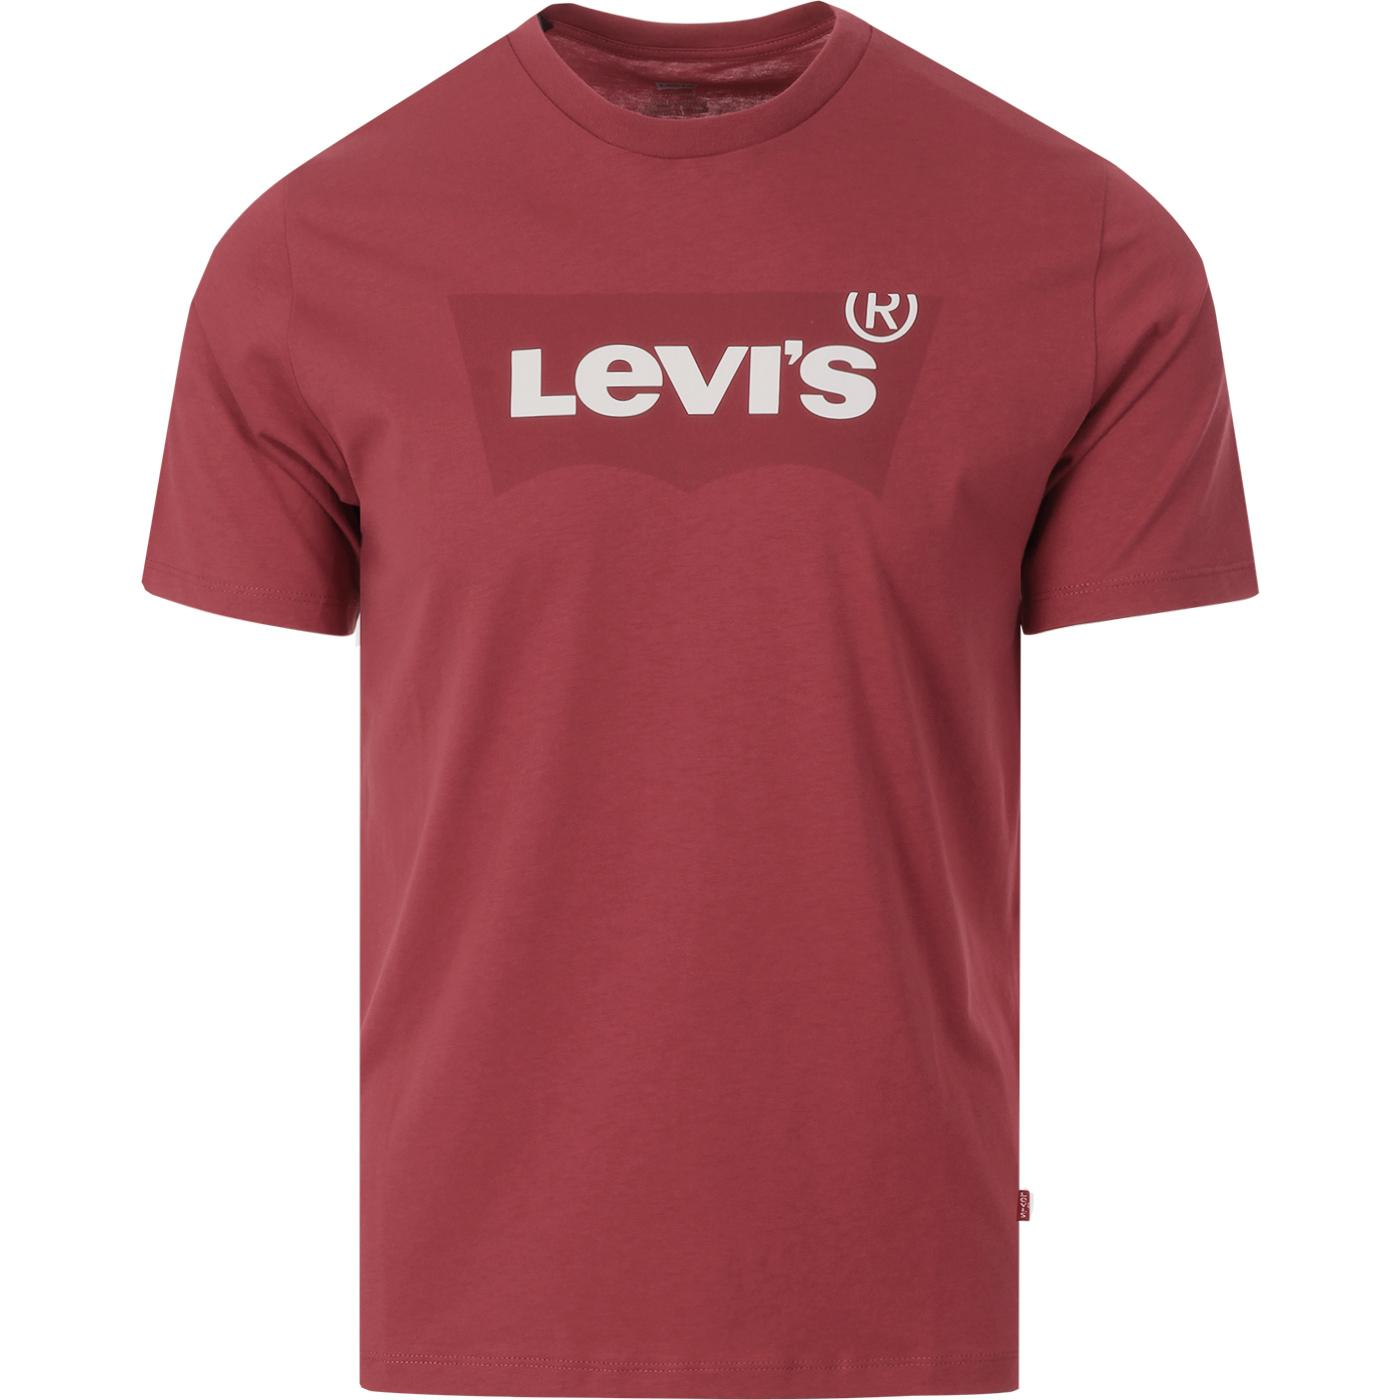 LEVI'S Men's Housemark Logo Graphic T-Shirt RED